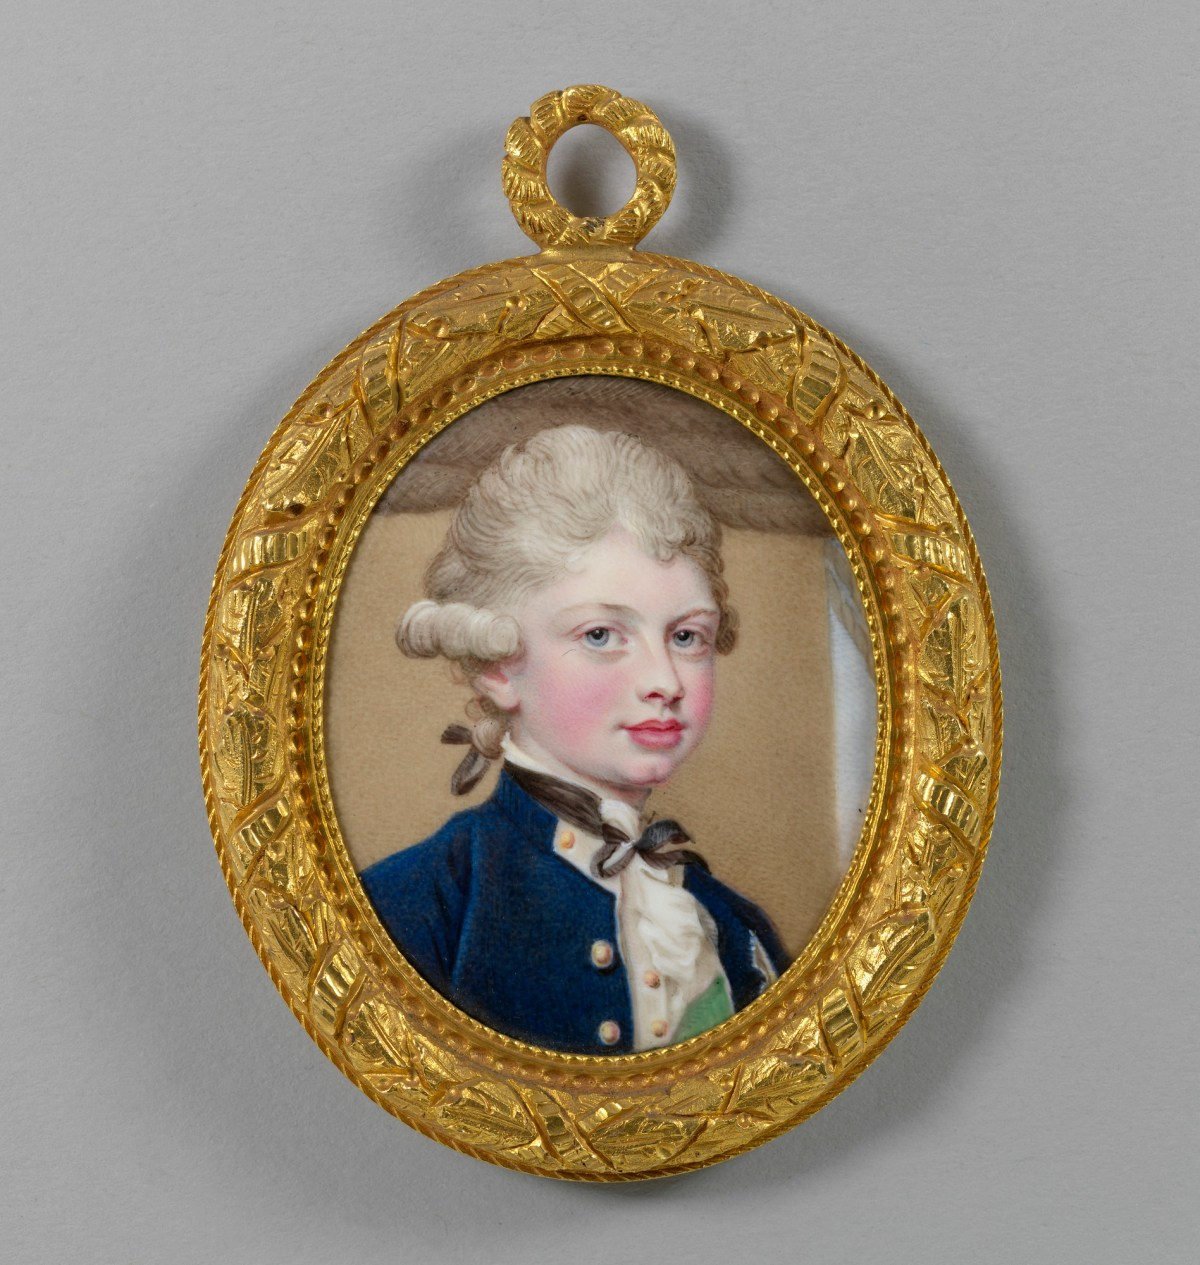 Introducing William IV: A 'sailor king'?